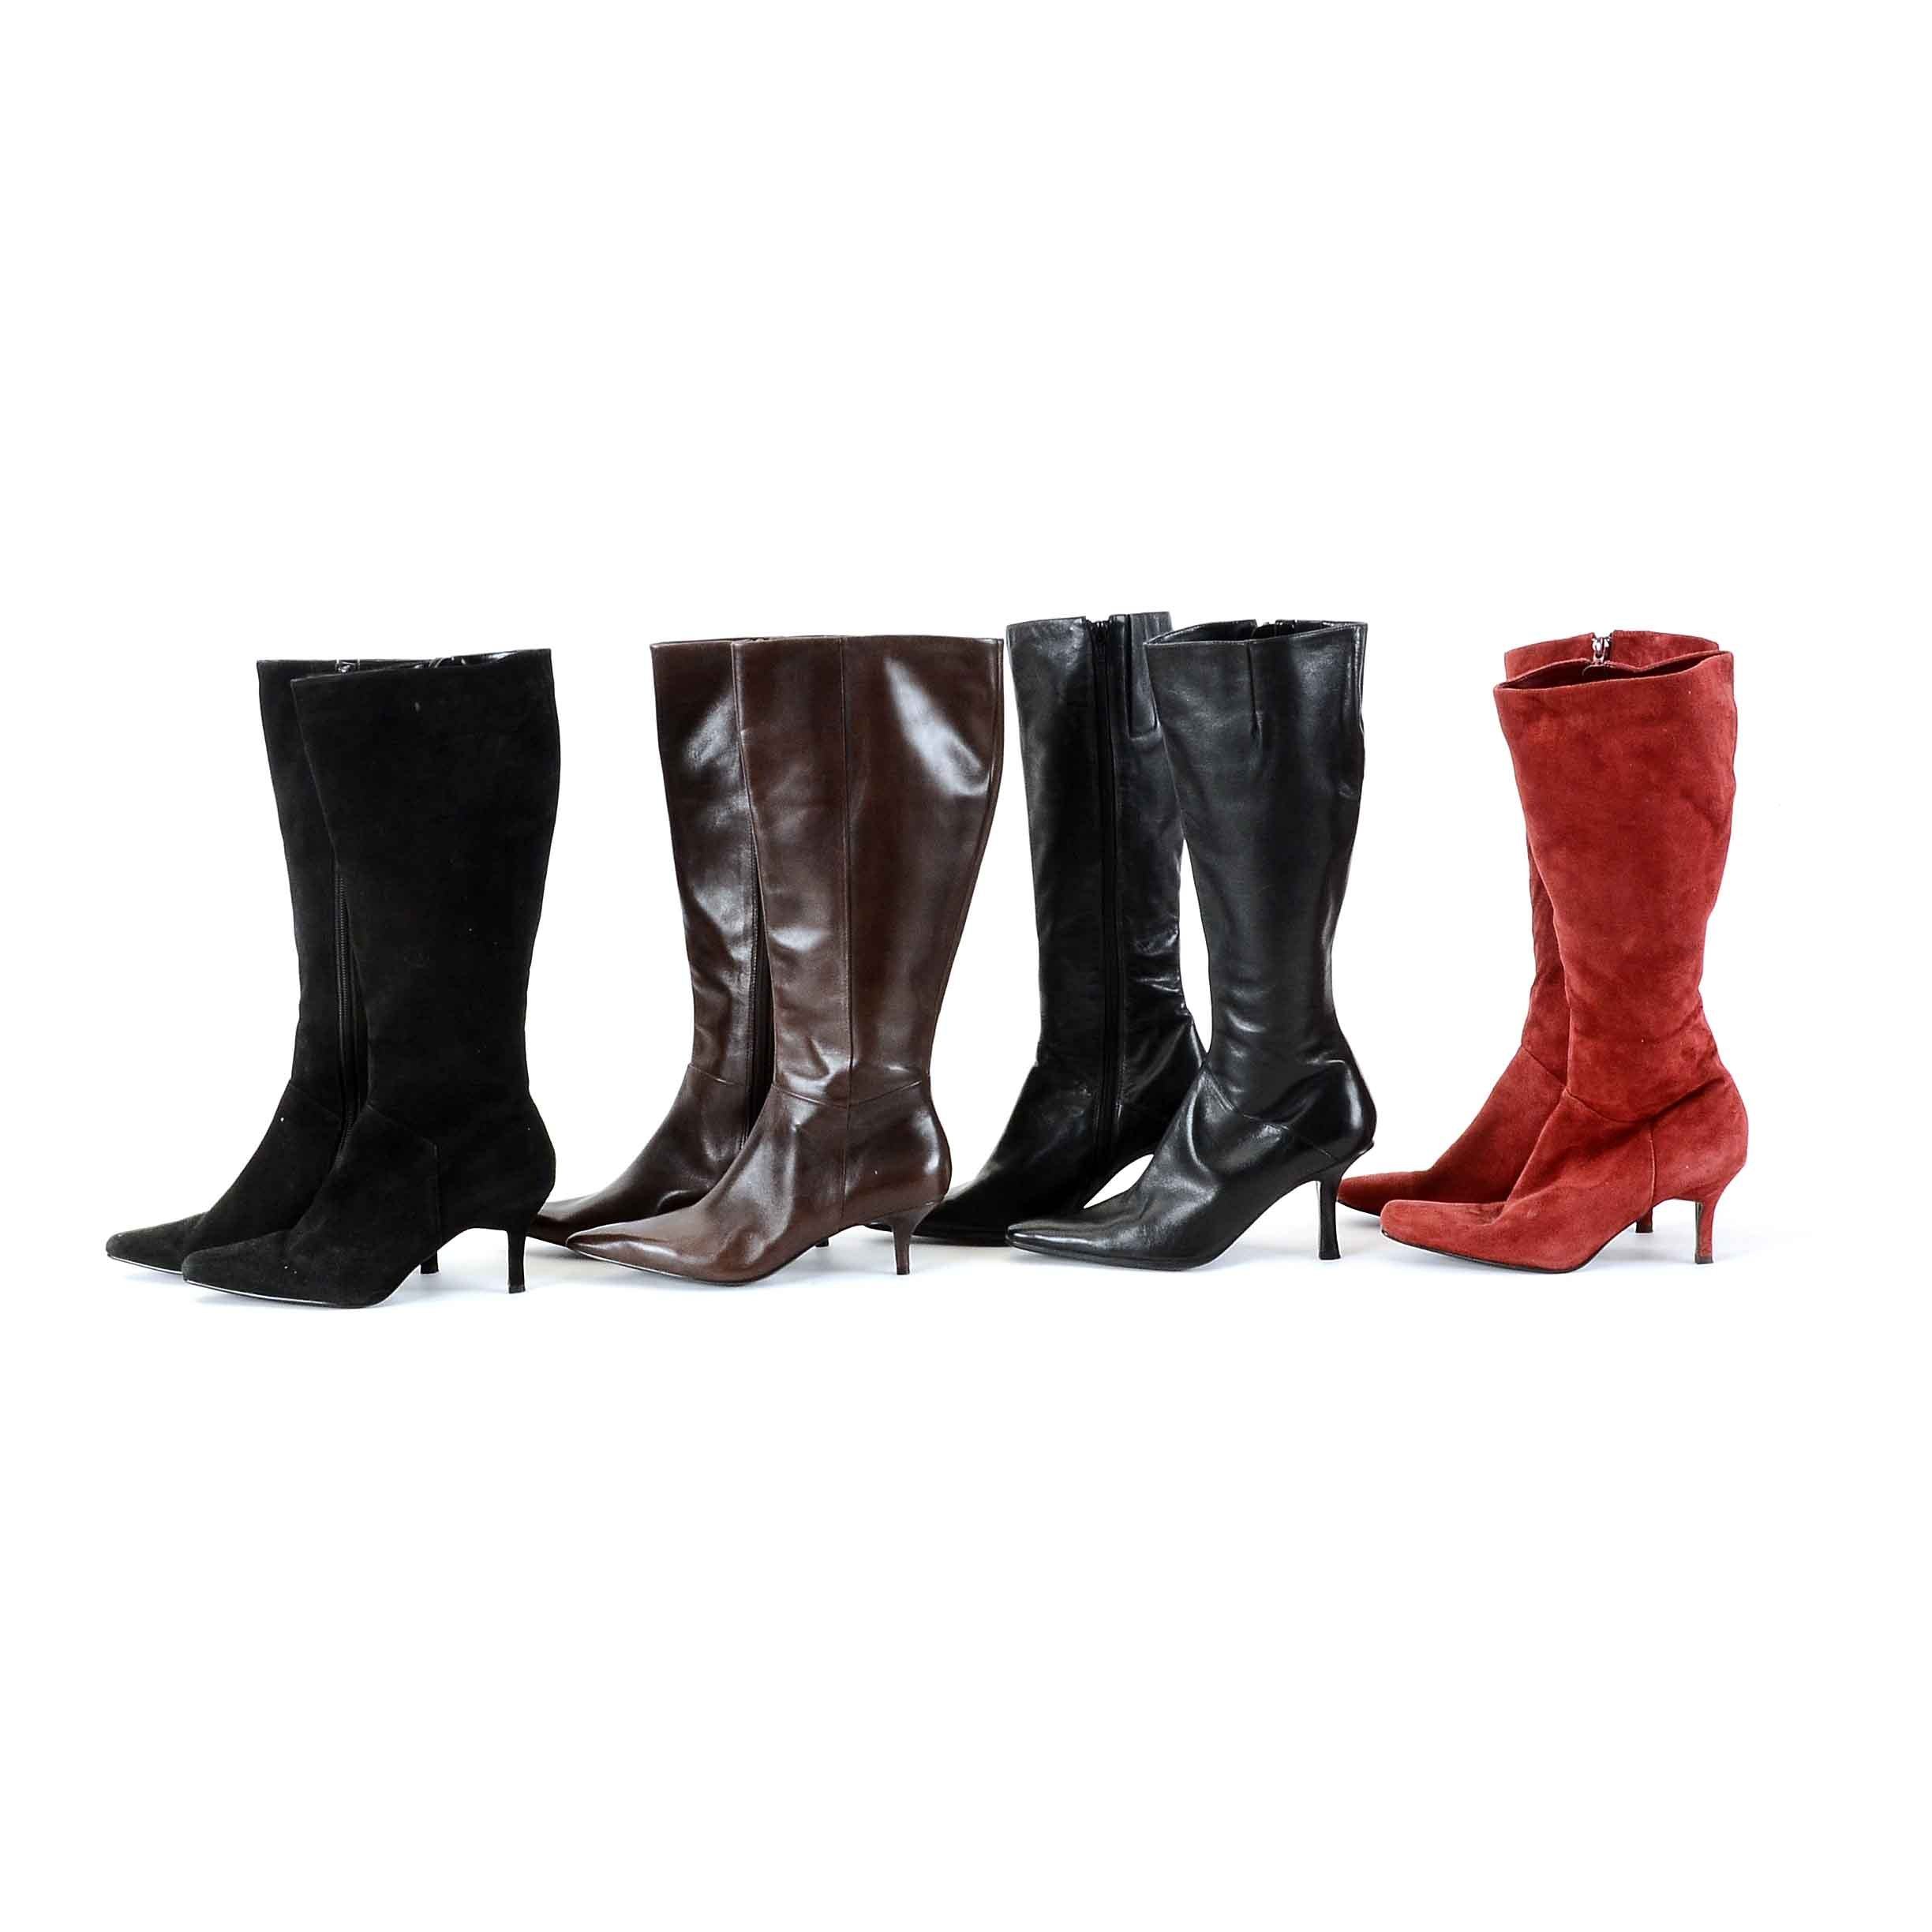 Collection of Women's High Heel Leather and Suede Boots